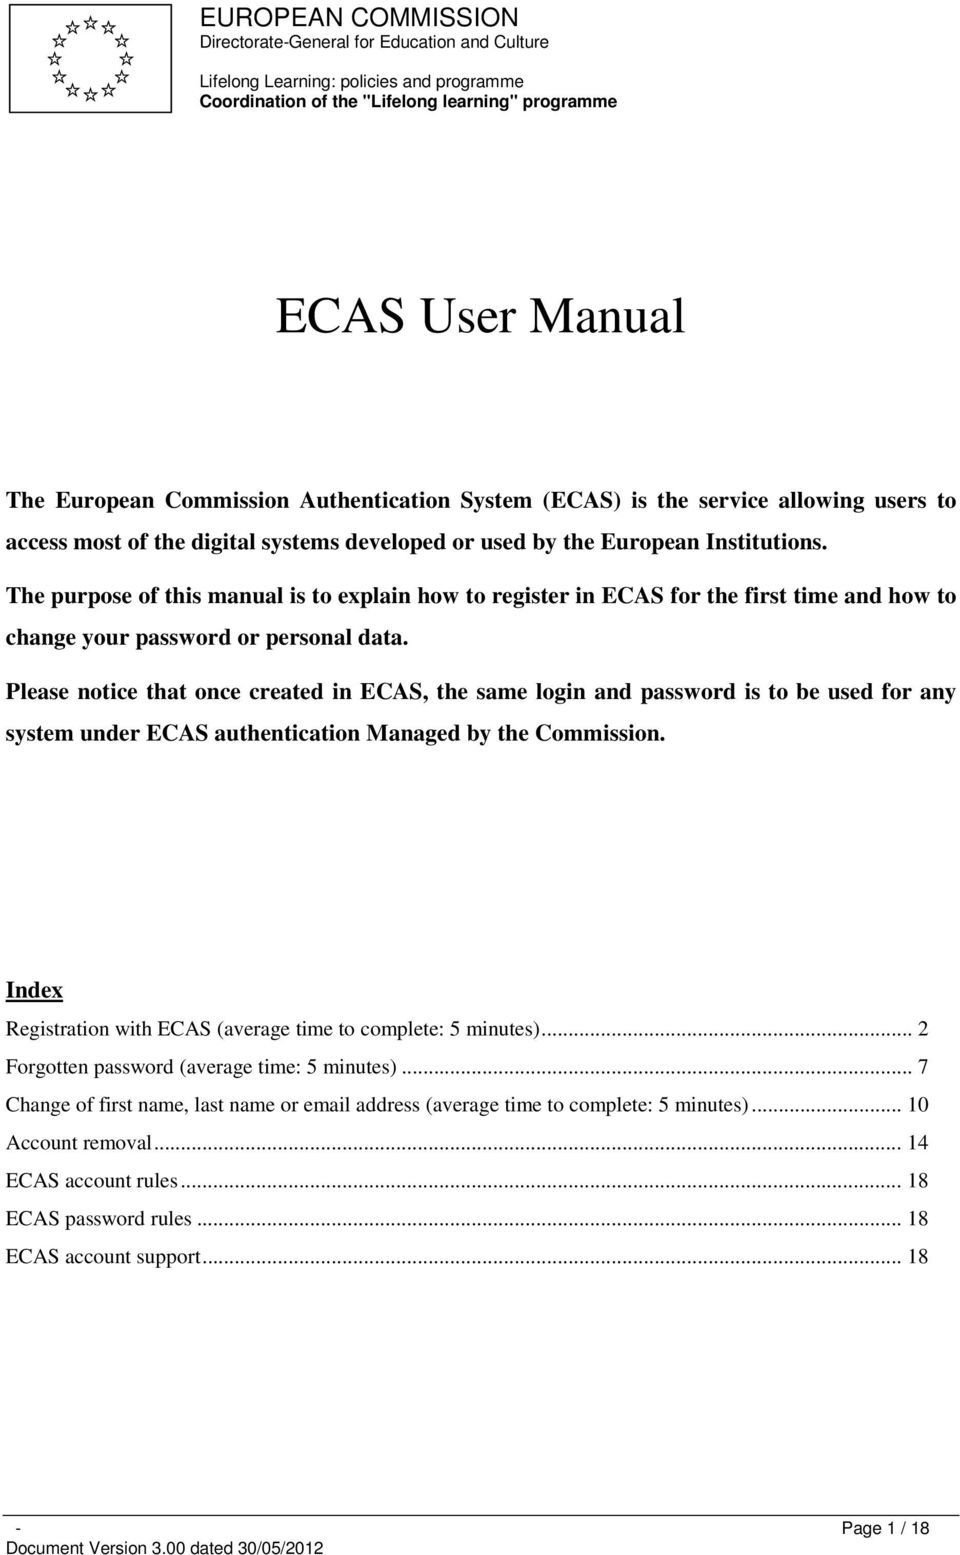 The purpose of this manual is to explain how to register in ECAS for the first time and how to change your password or personal data.